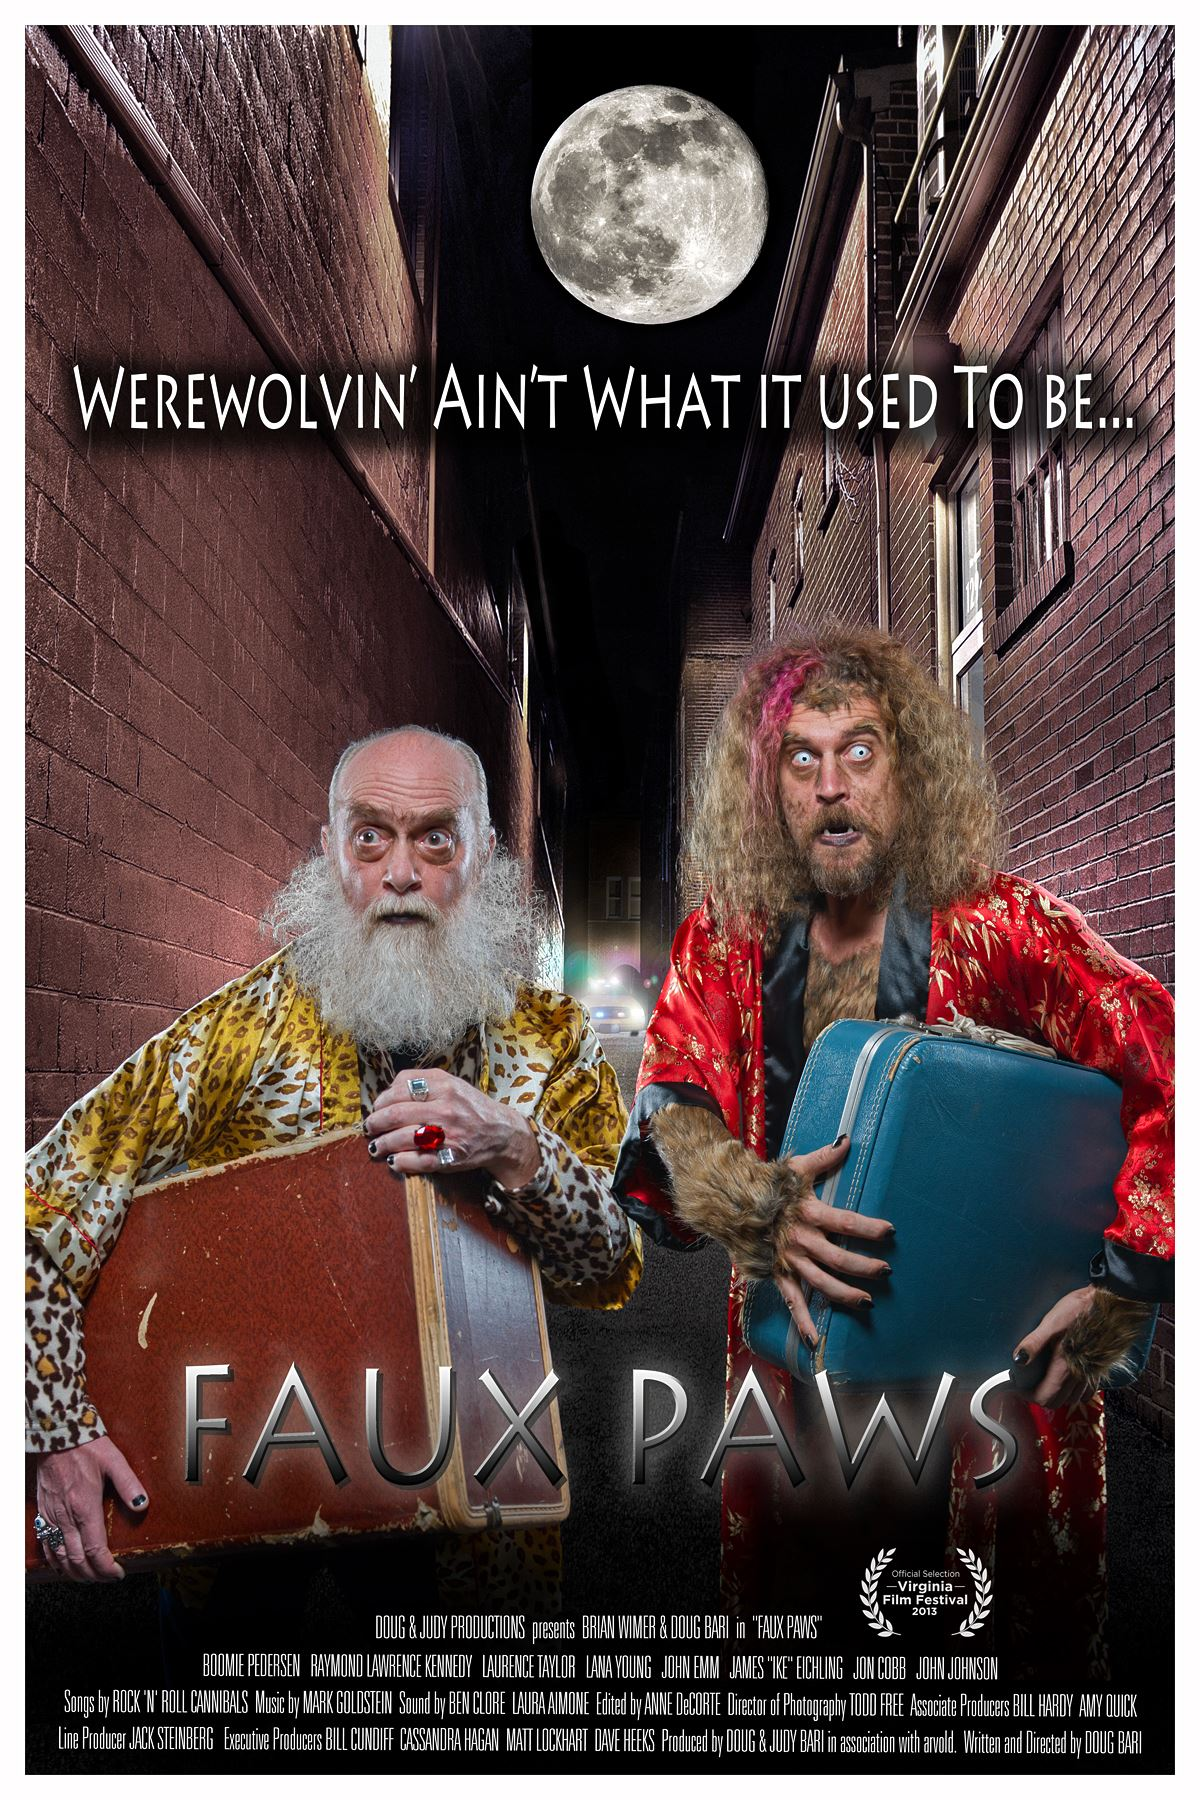 Faux Paws The Film Poster